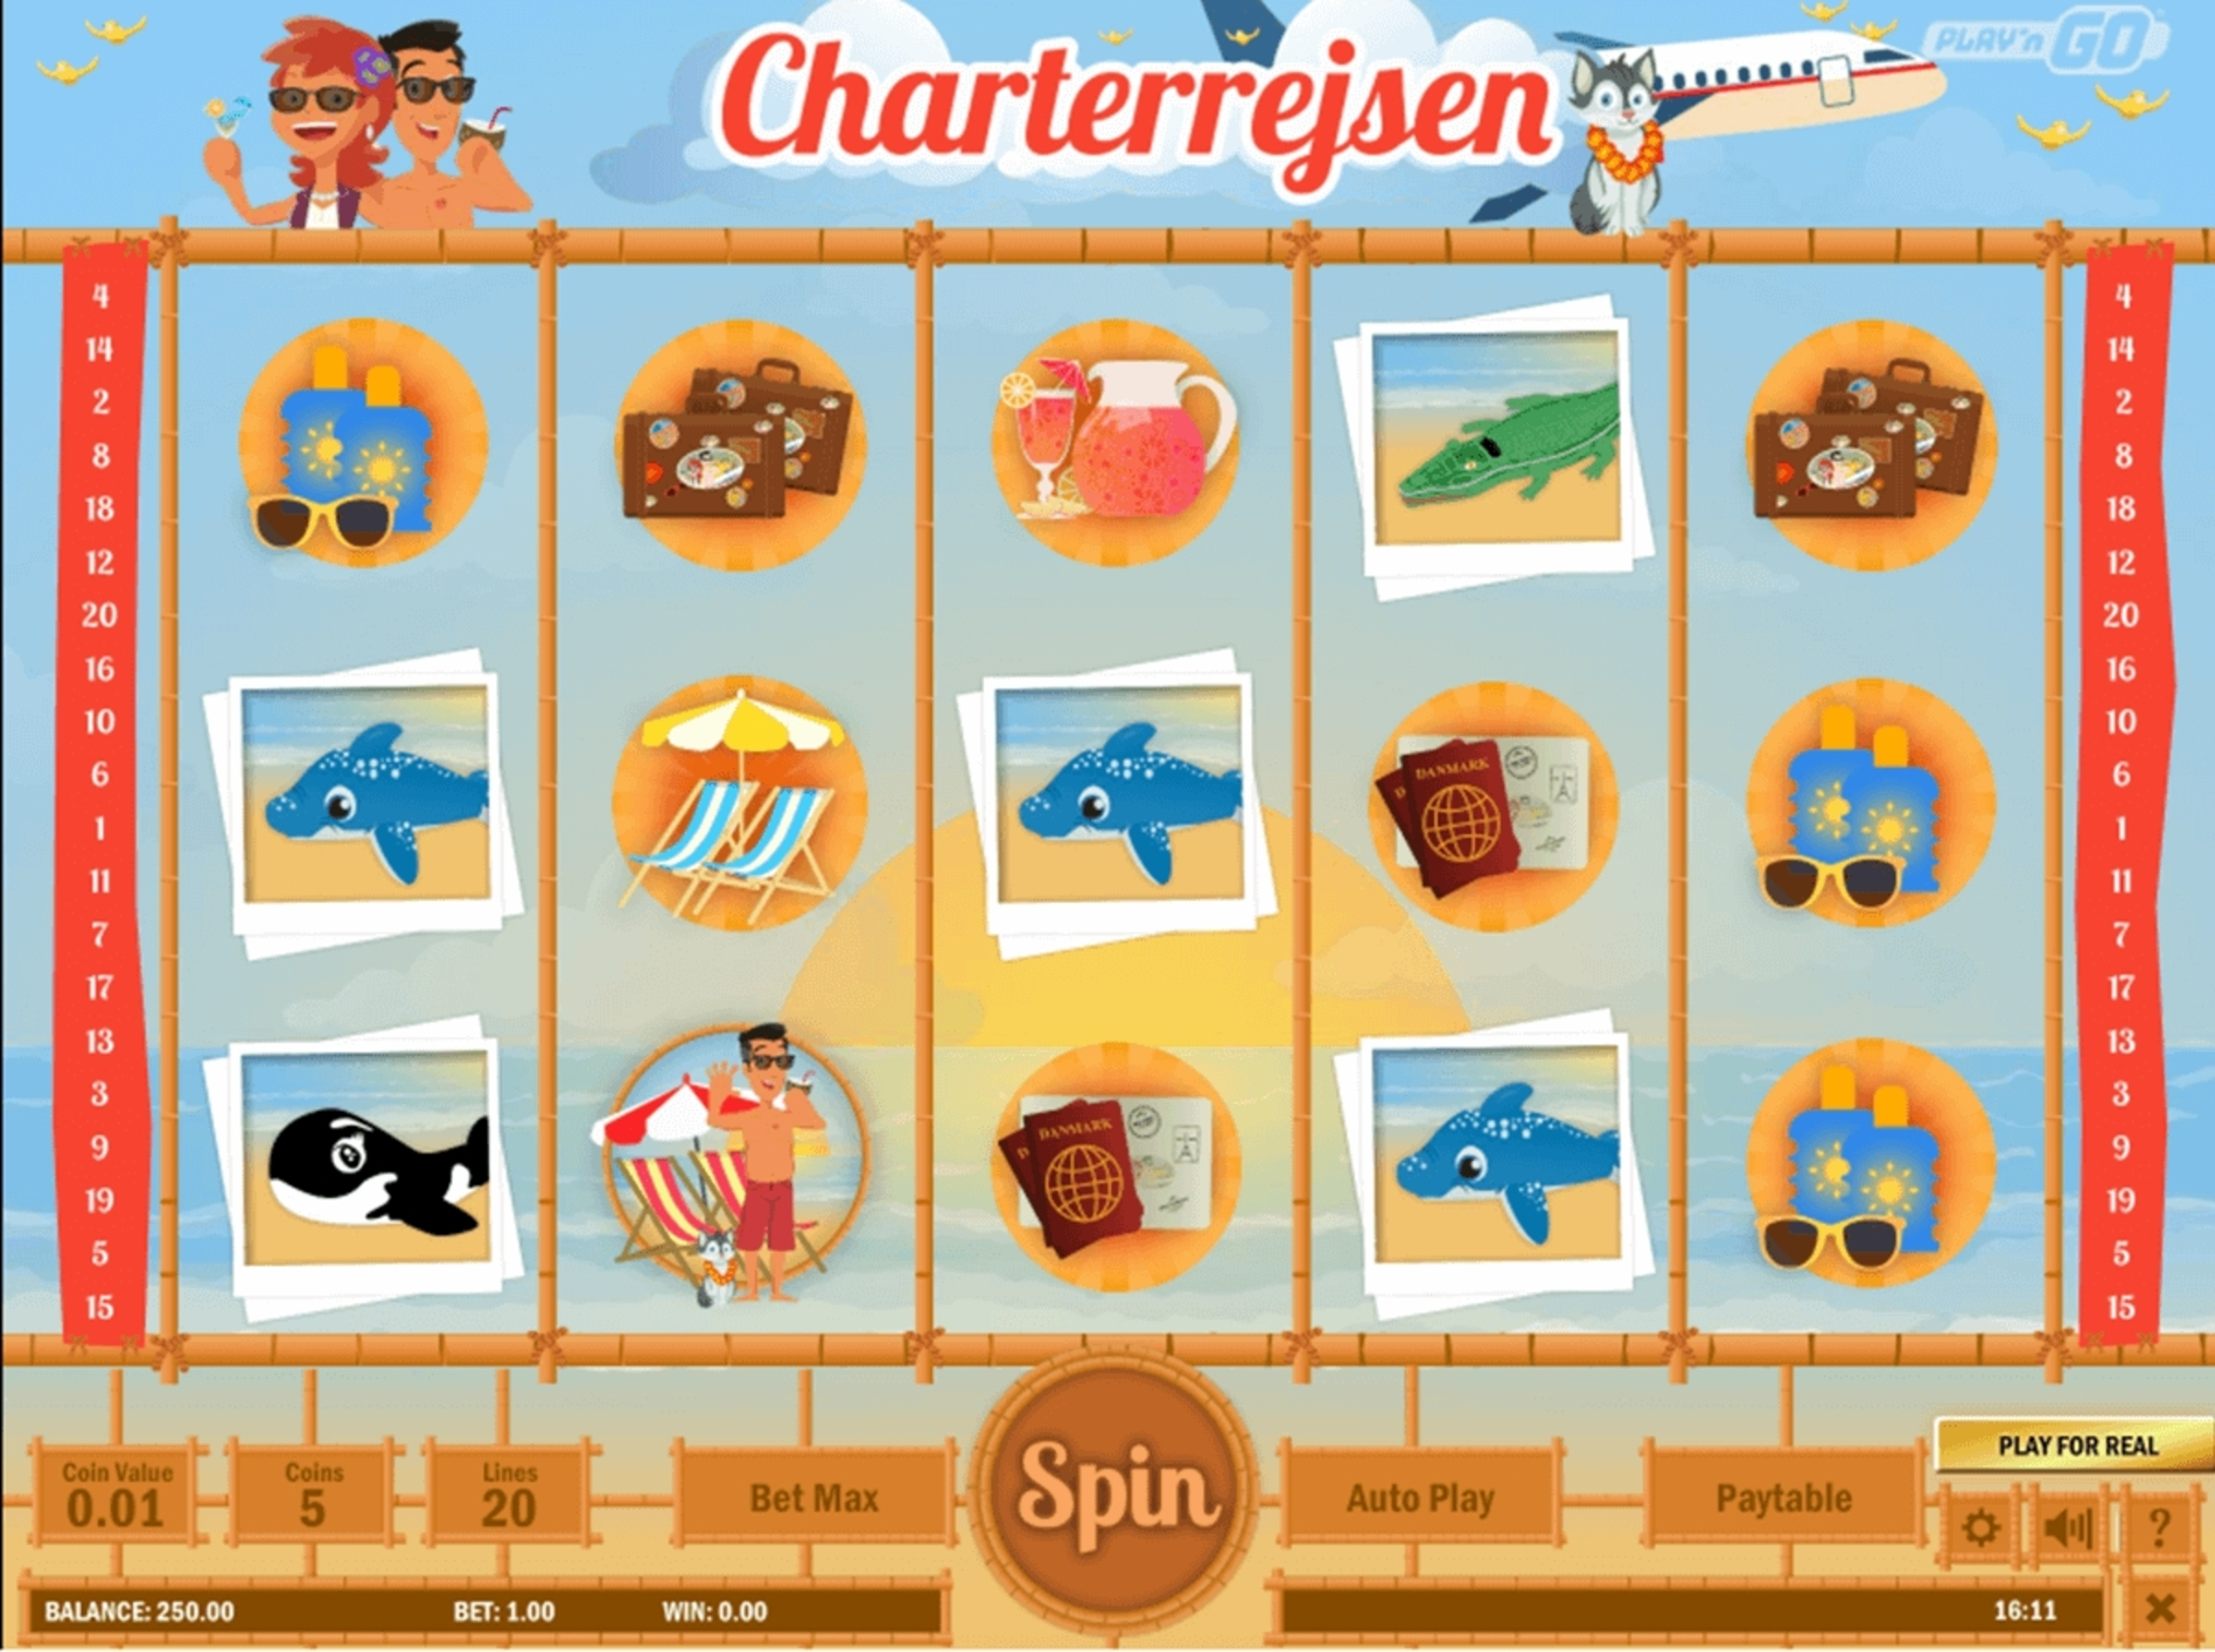 The Charterrejsen Online Slot Demo Game by Play'n Go